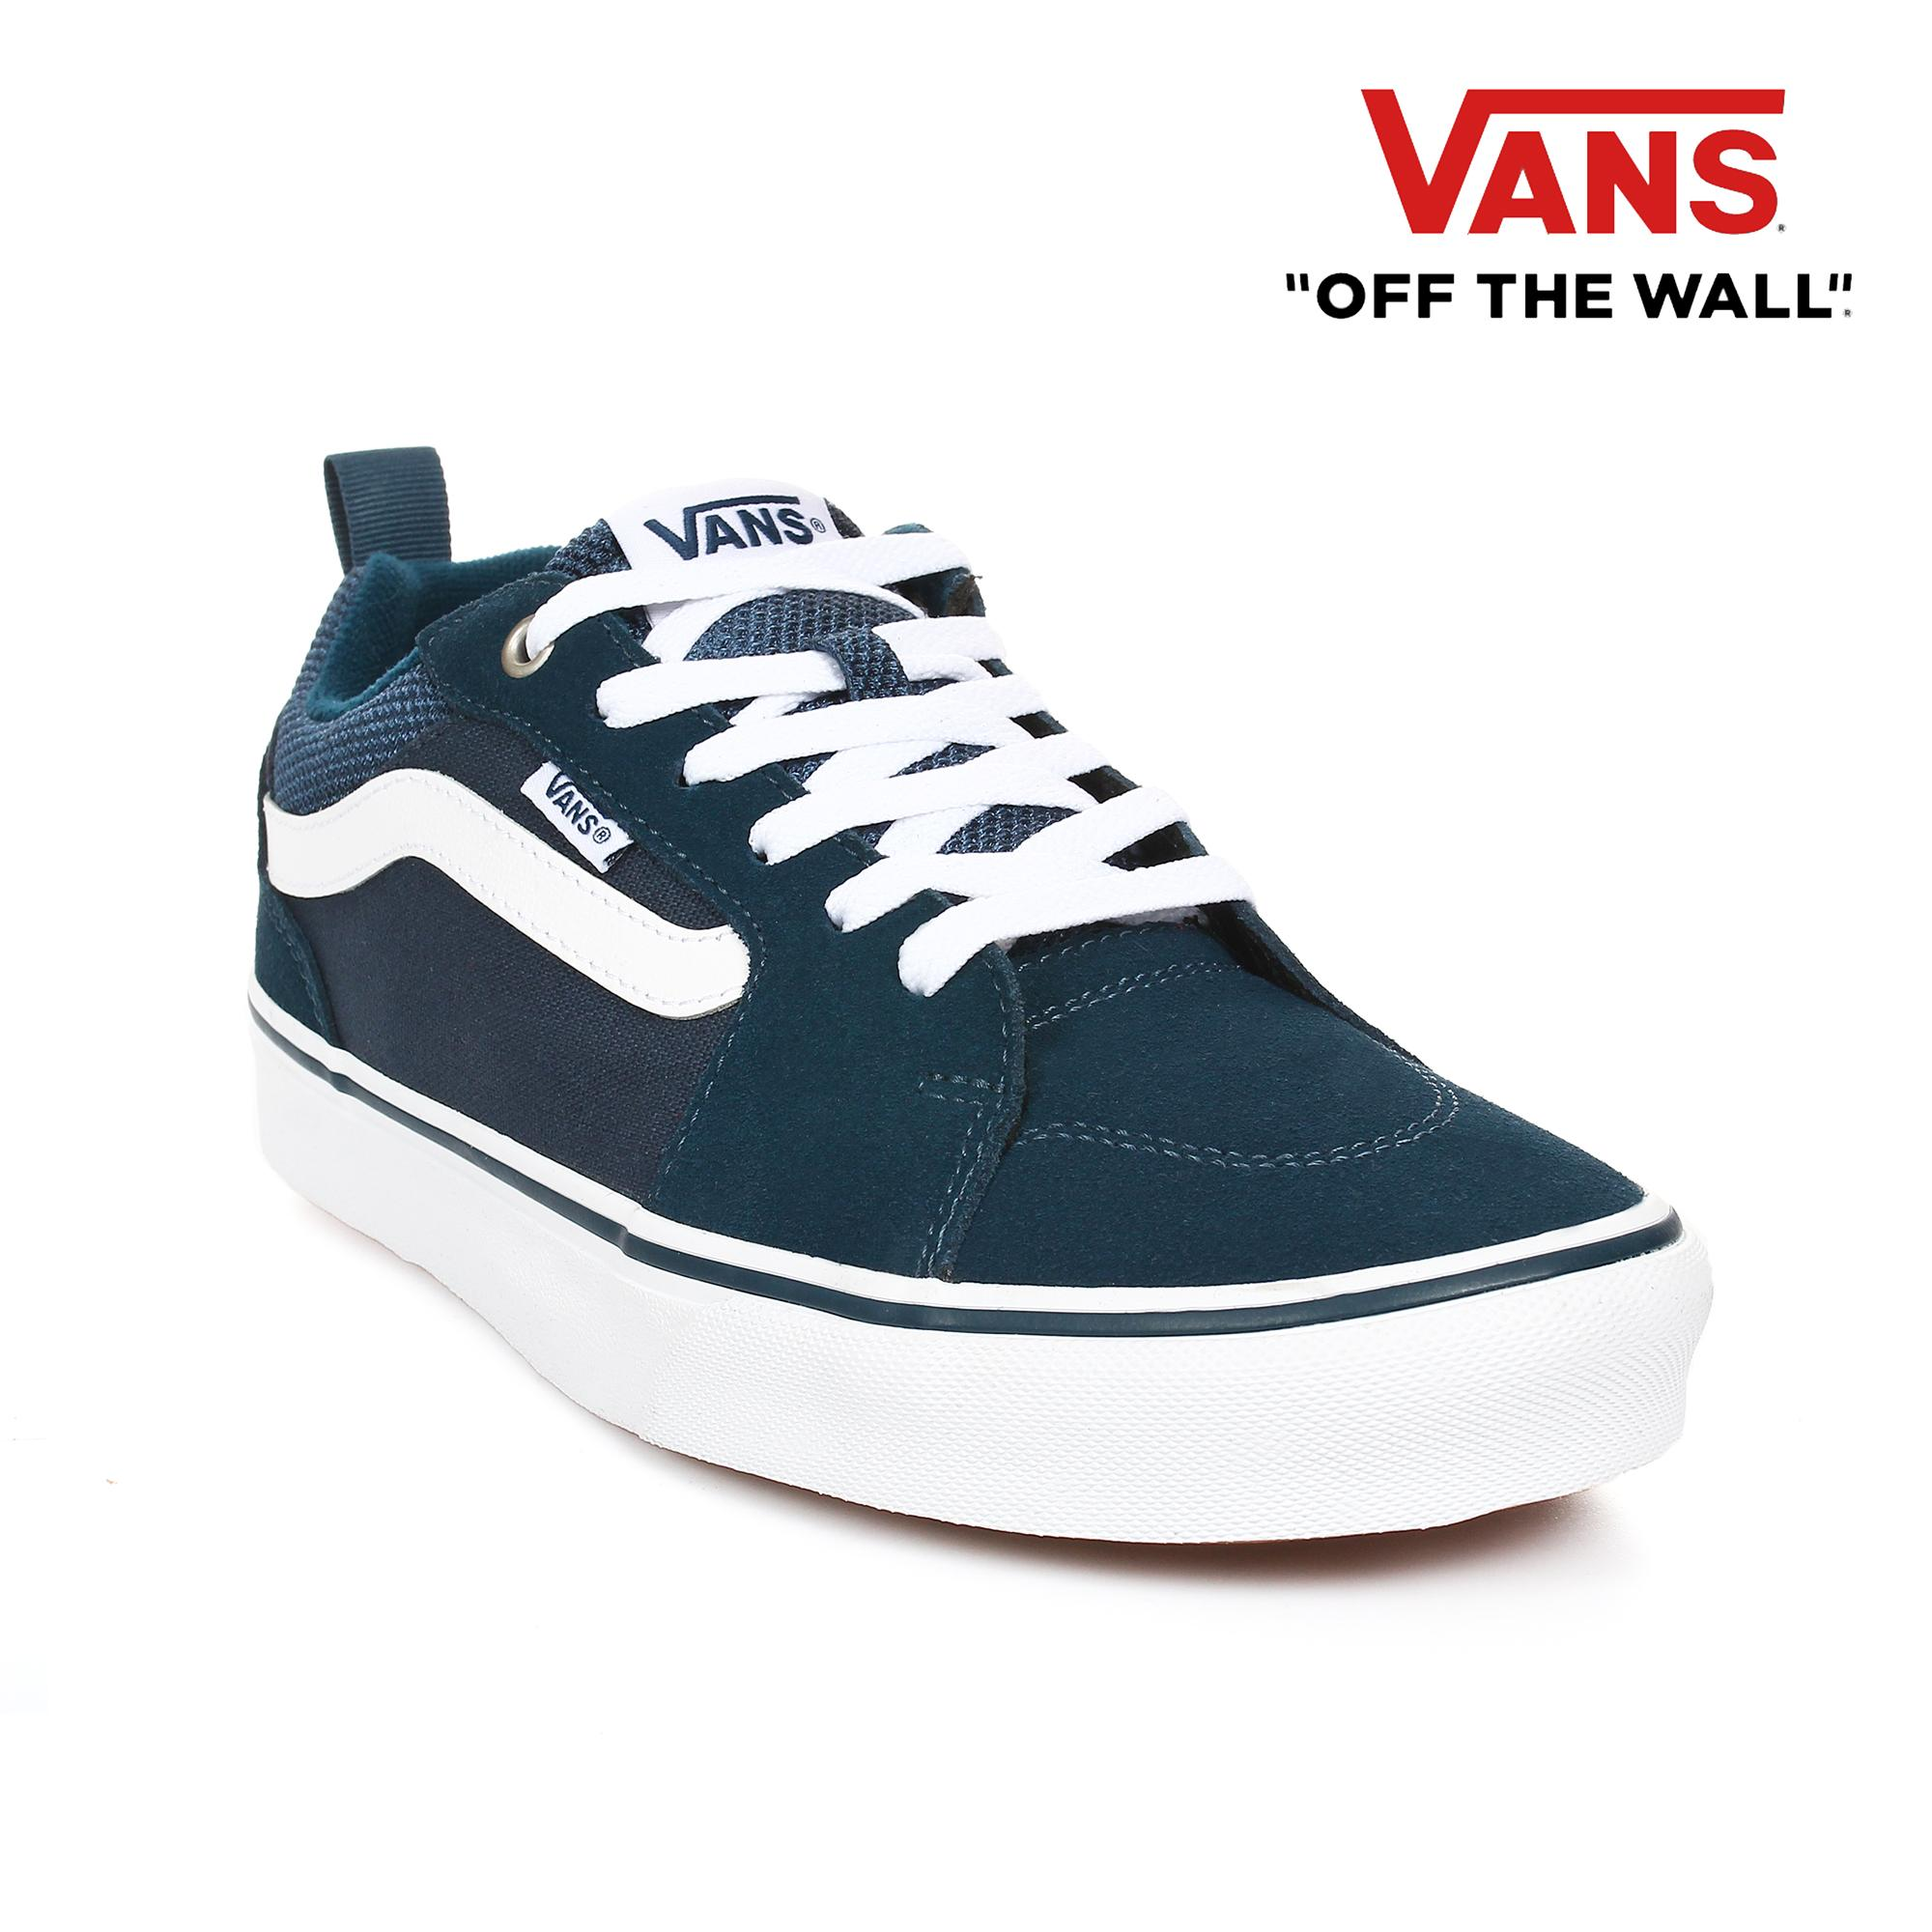 1de175526ff051 Vans Shoes for Men Philippines - Vans Men s Shoes for sale - prices ...